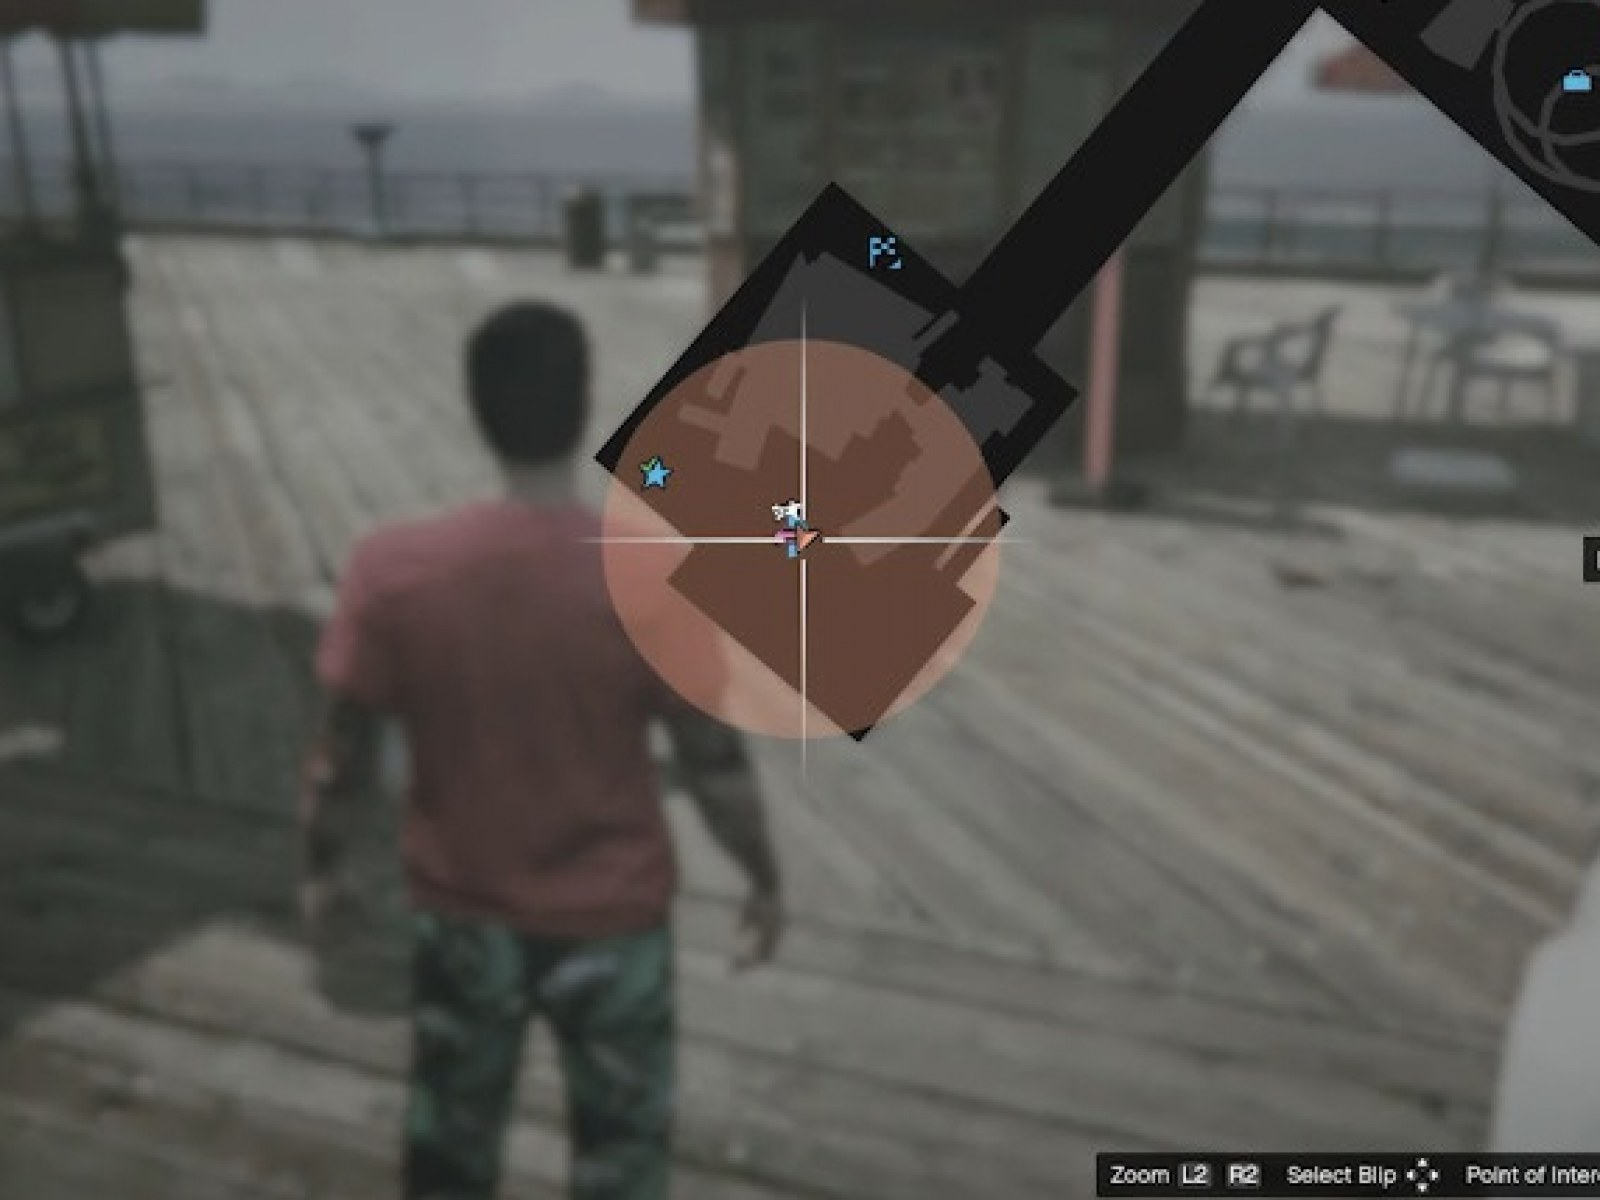 Gta Online All 54 Hidden Playing Card Locations To Get The High